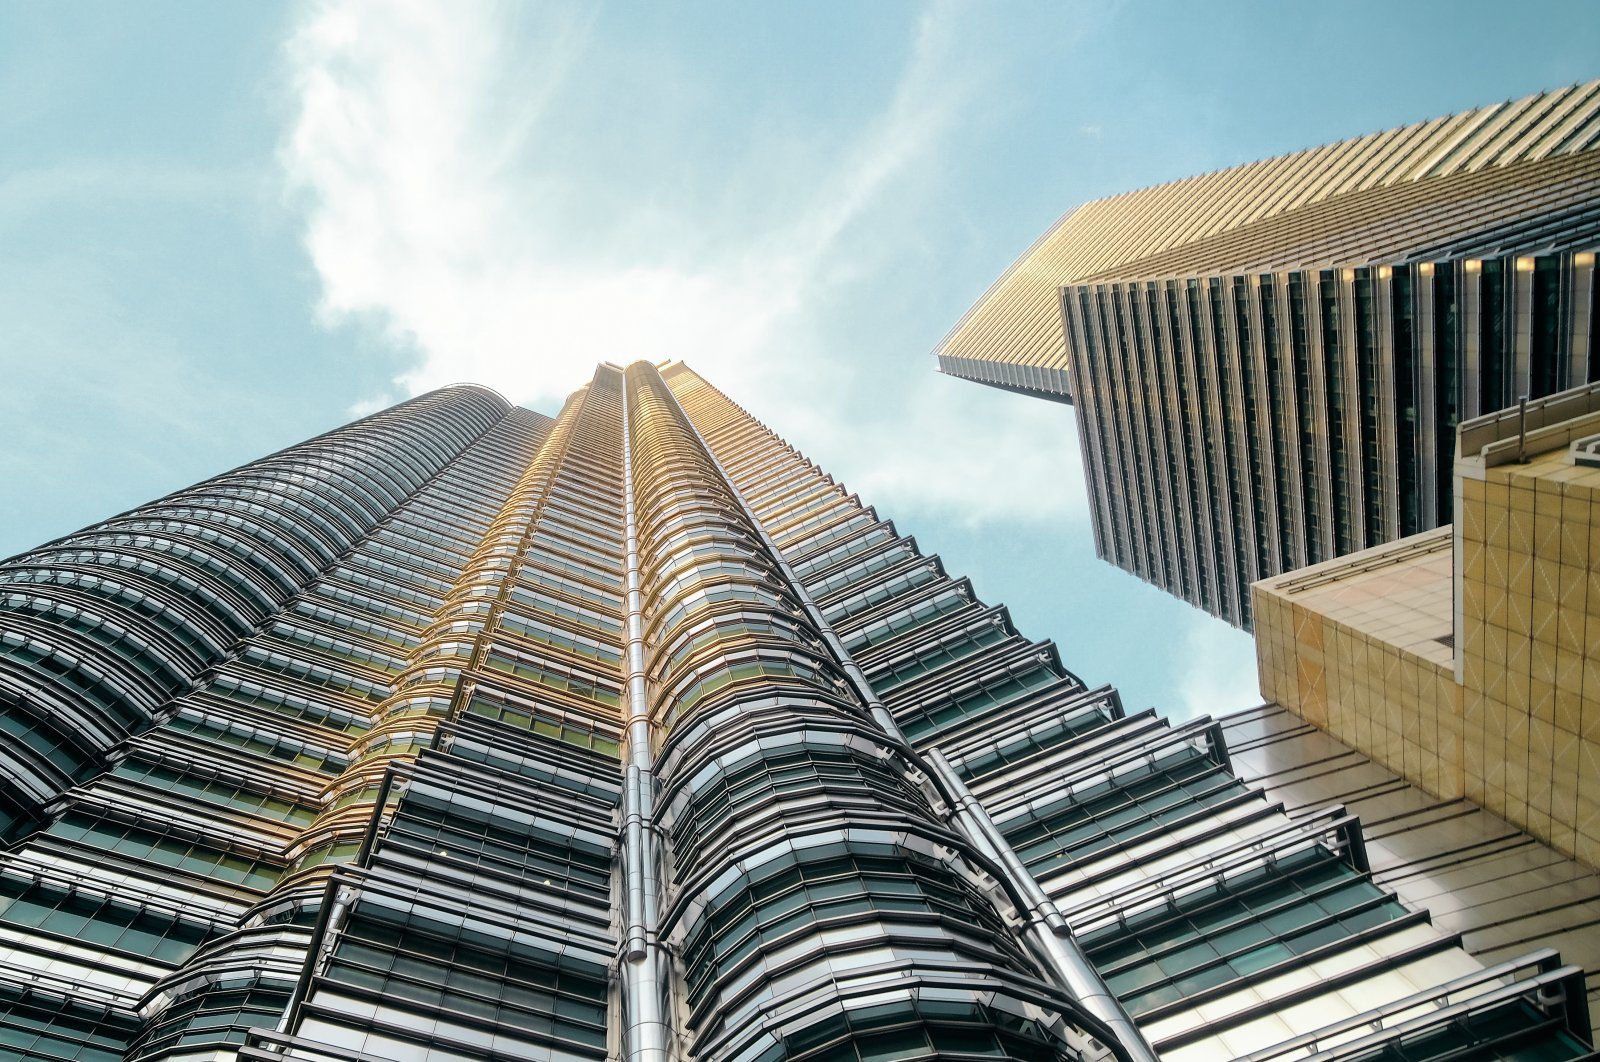 Low angle view of the Petronas Twin Towers in Kuala Lumpur, Malaysia (Getty Images)